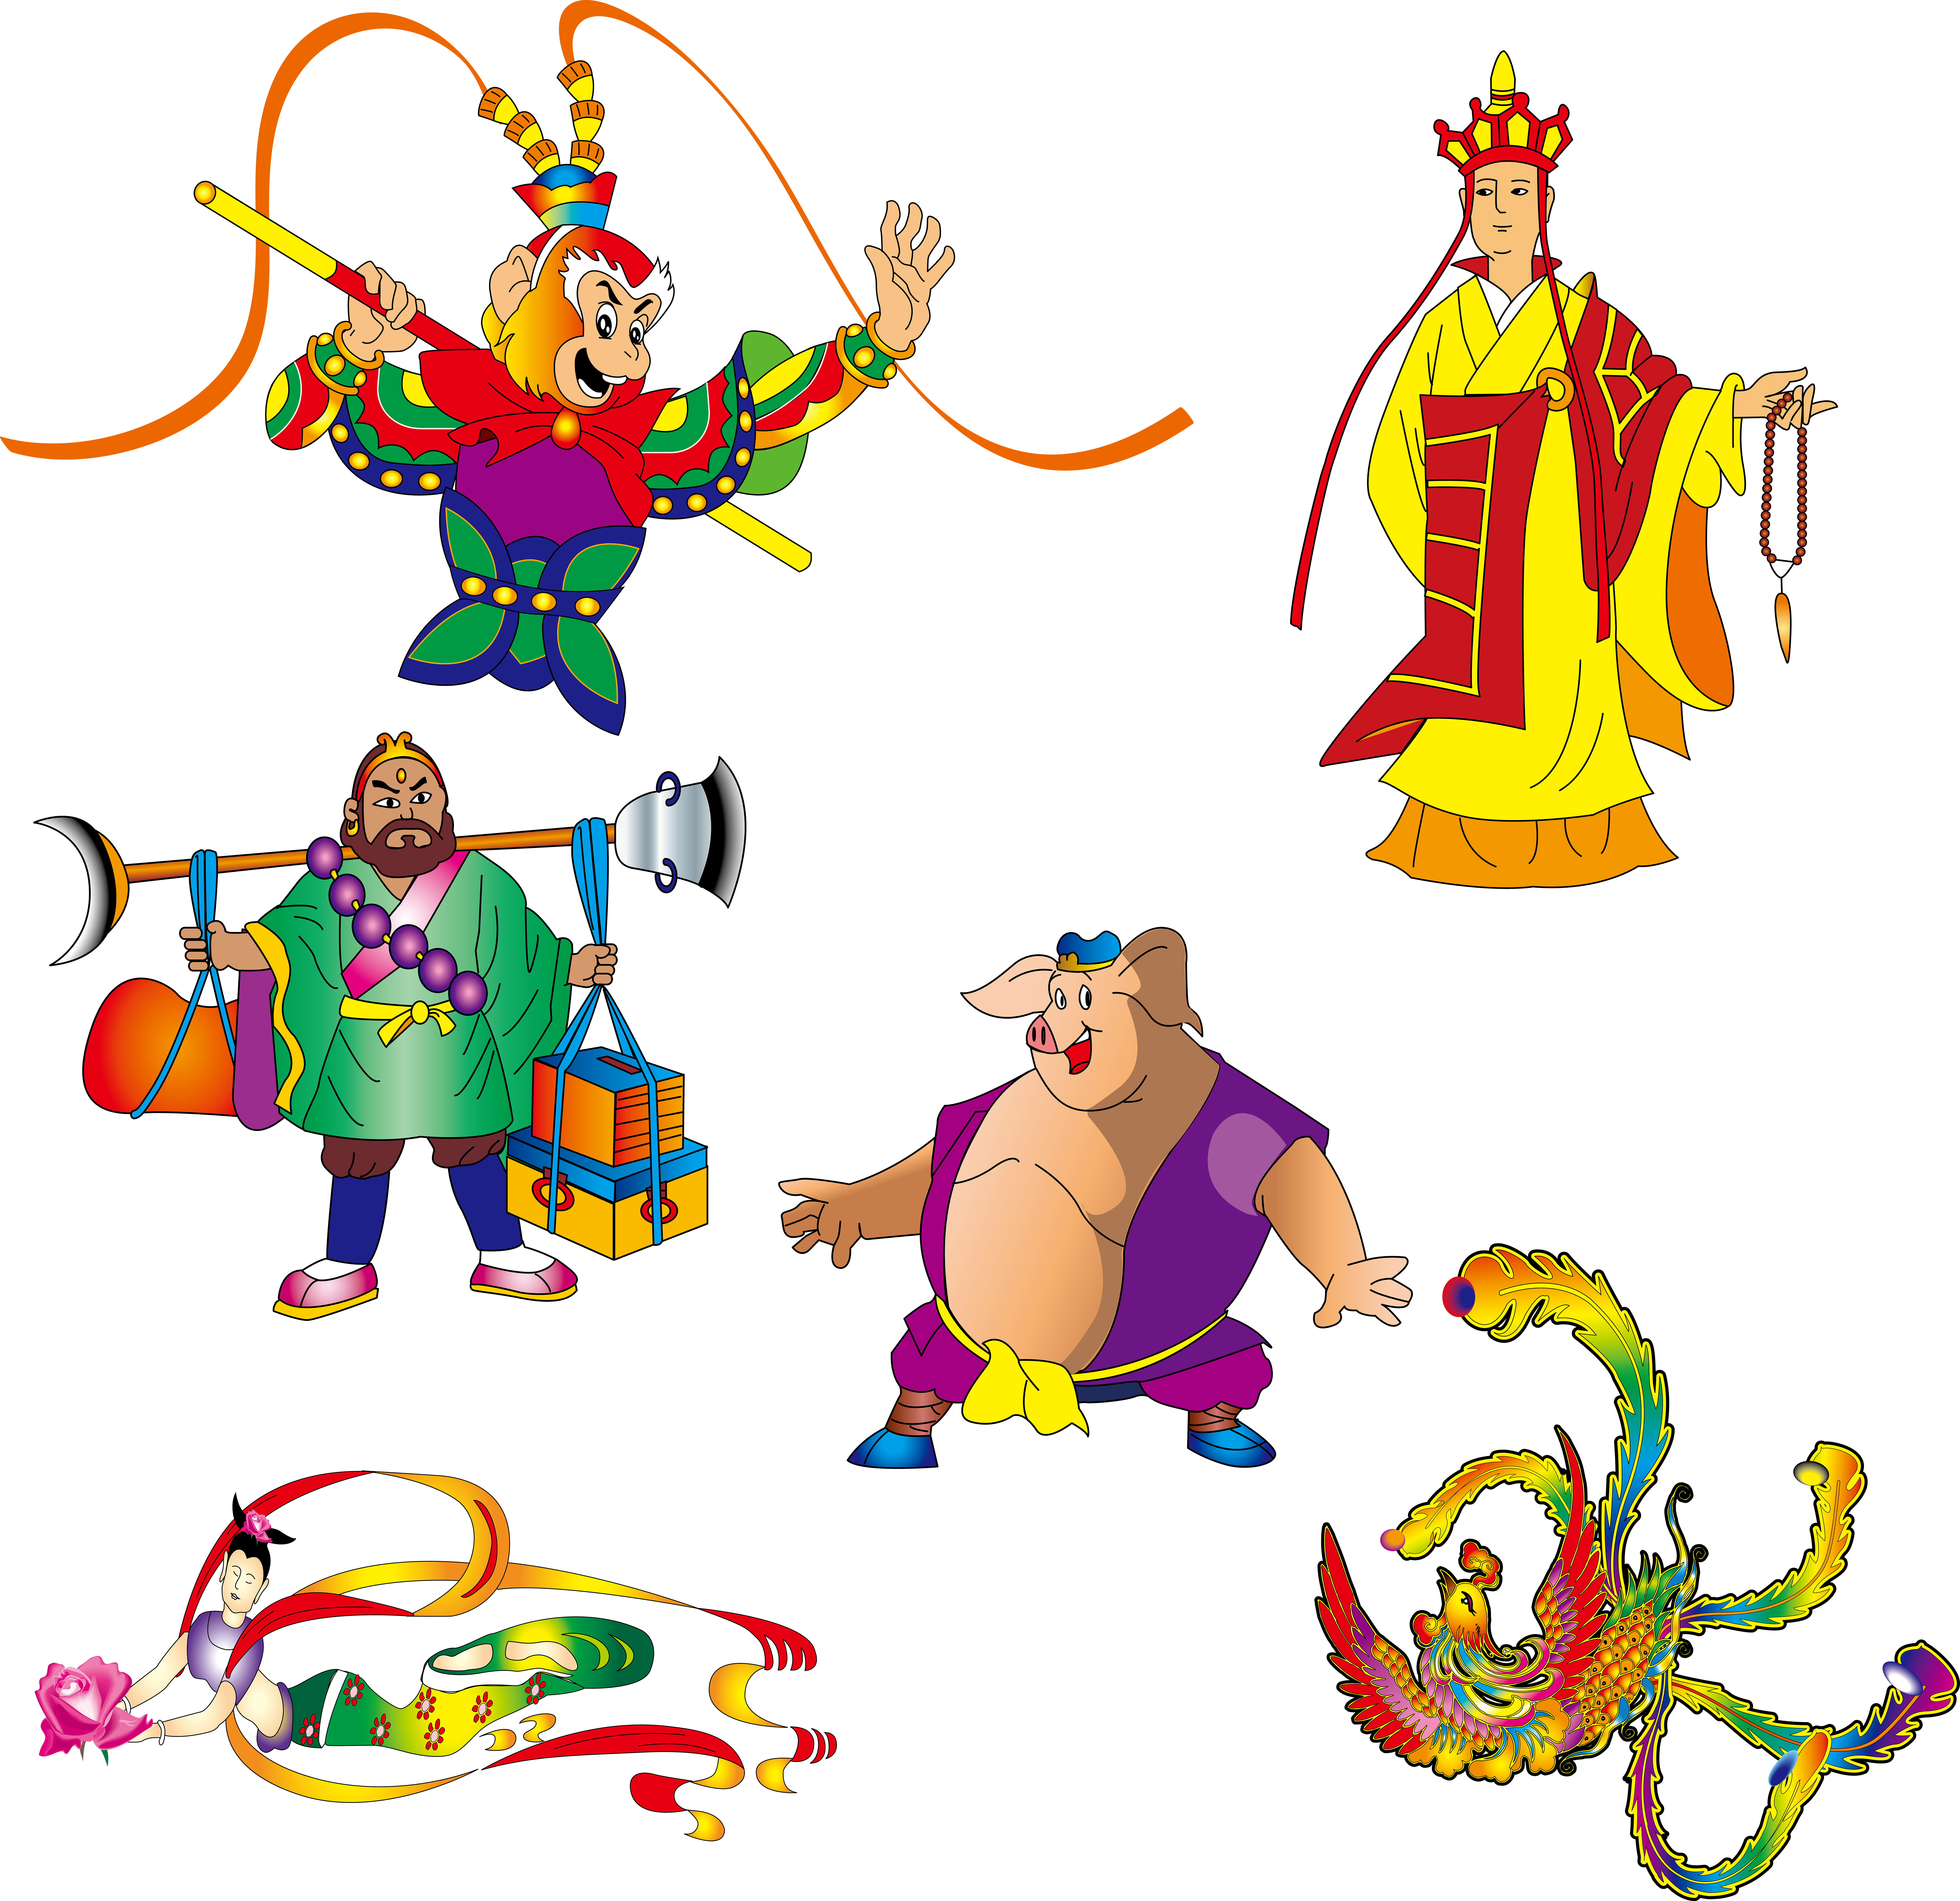 Free sun download artwork clipart picture library download Monkey: Journey to the West Sun Wukong Westward Journey Online II ... picture library download